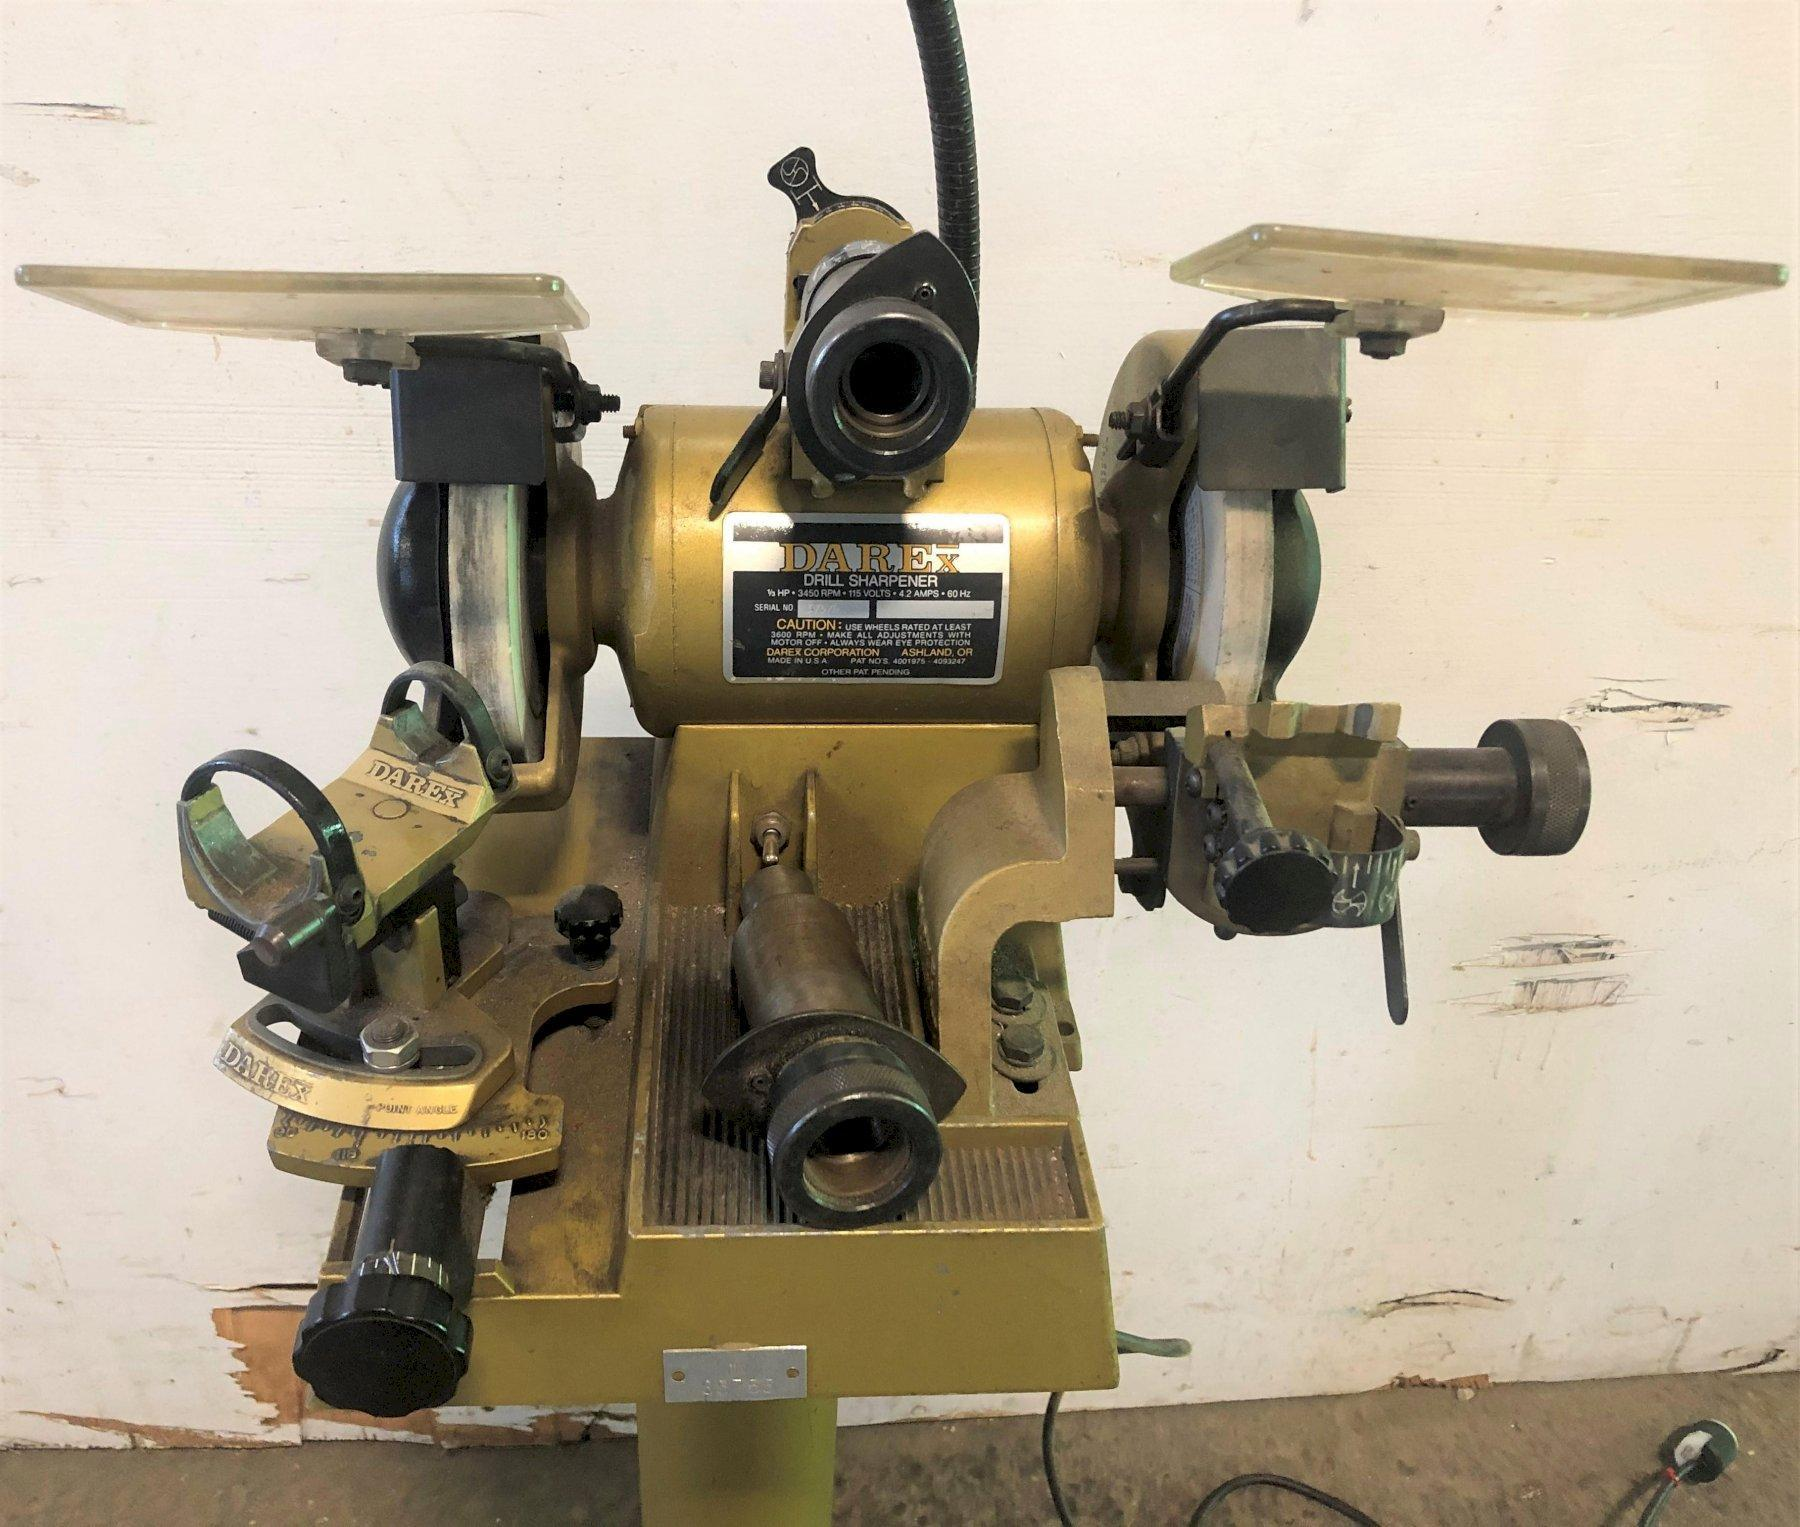 "Darex Drill Sharpener M5, 1/16"" - 3/4"" Capacity, Pedestal, 1 Phase, Nice"